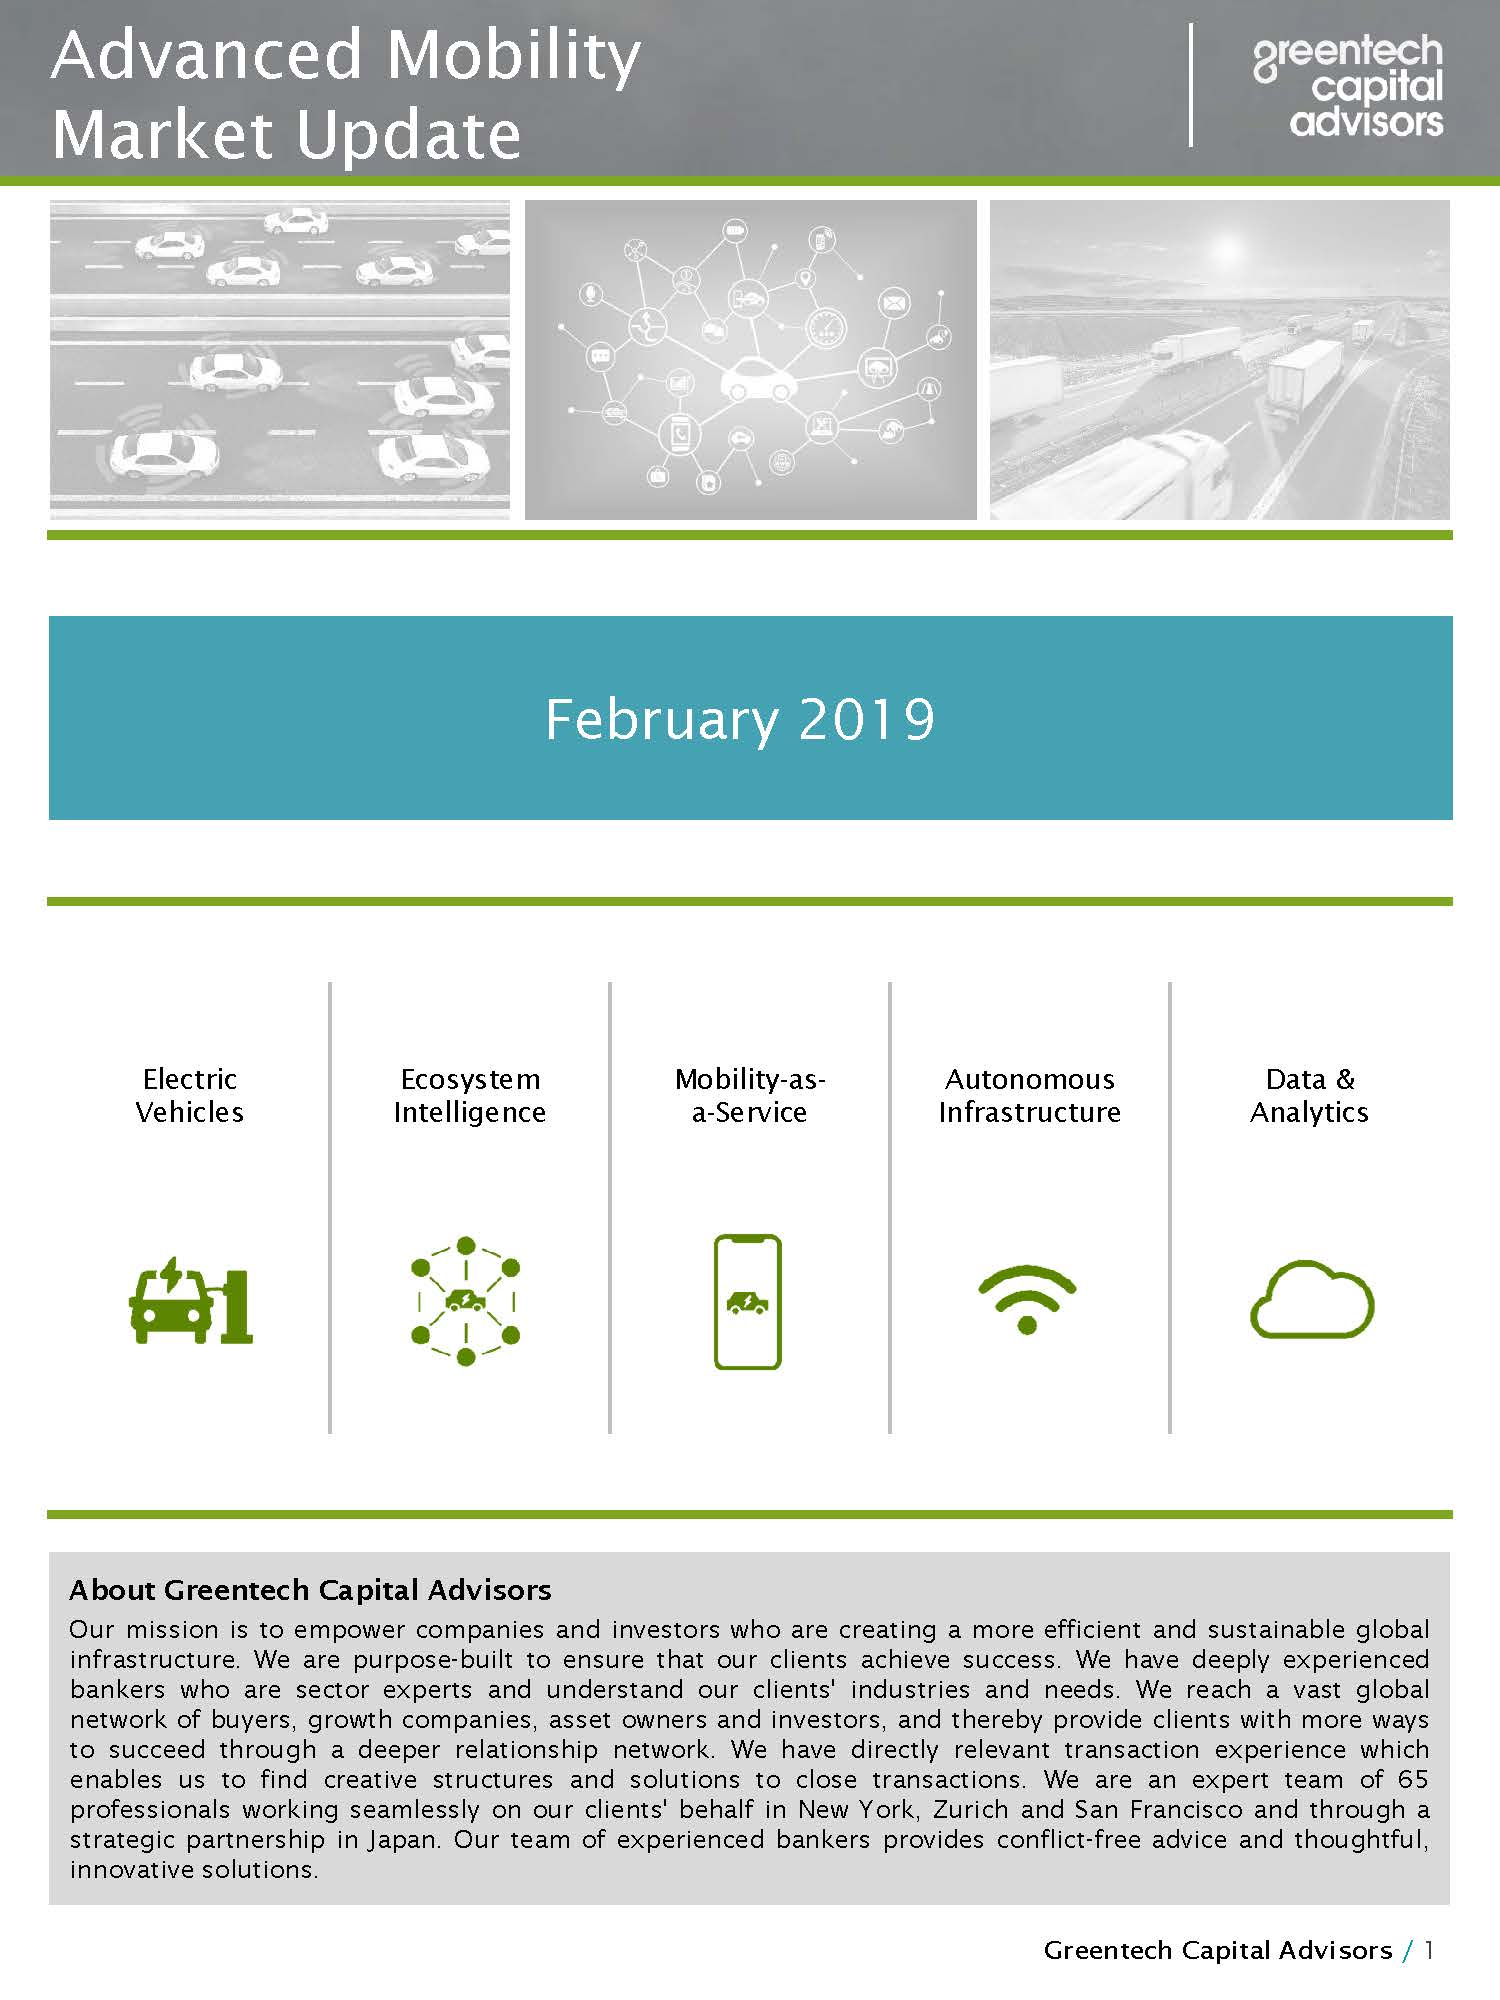 Advanced Mobility Market Update - February 2019